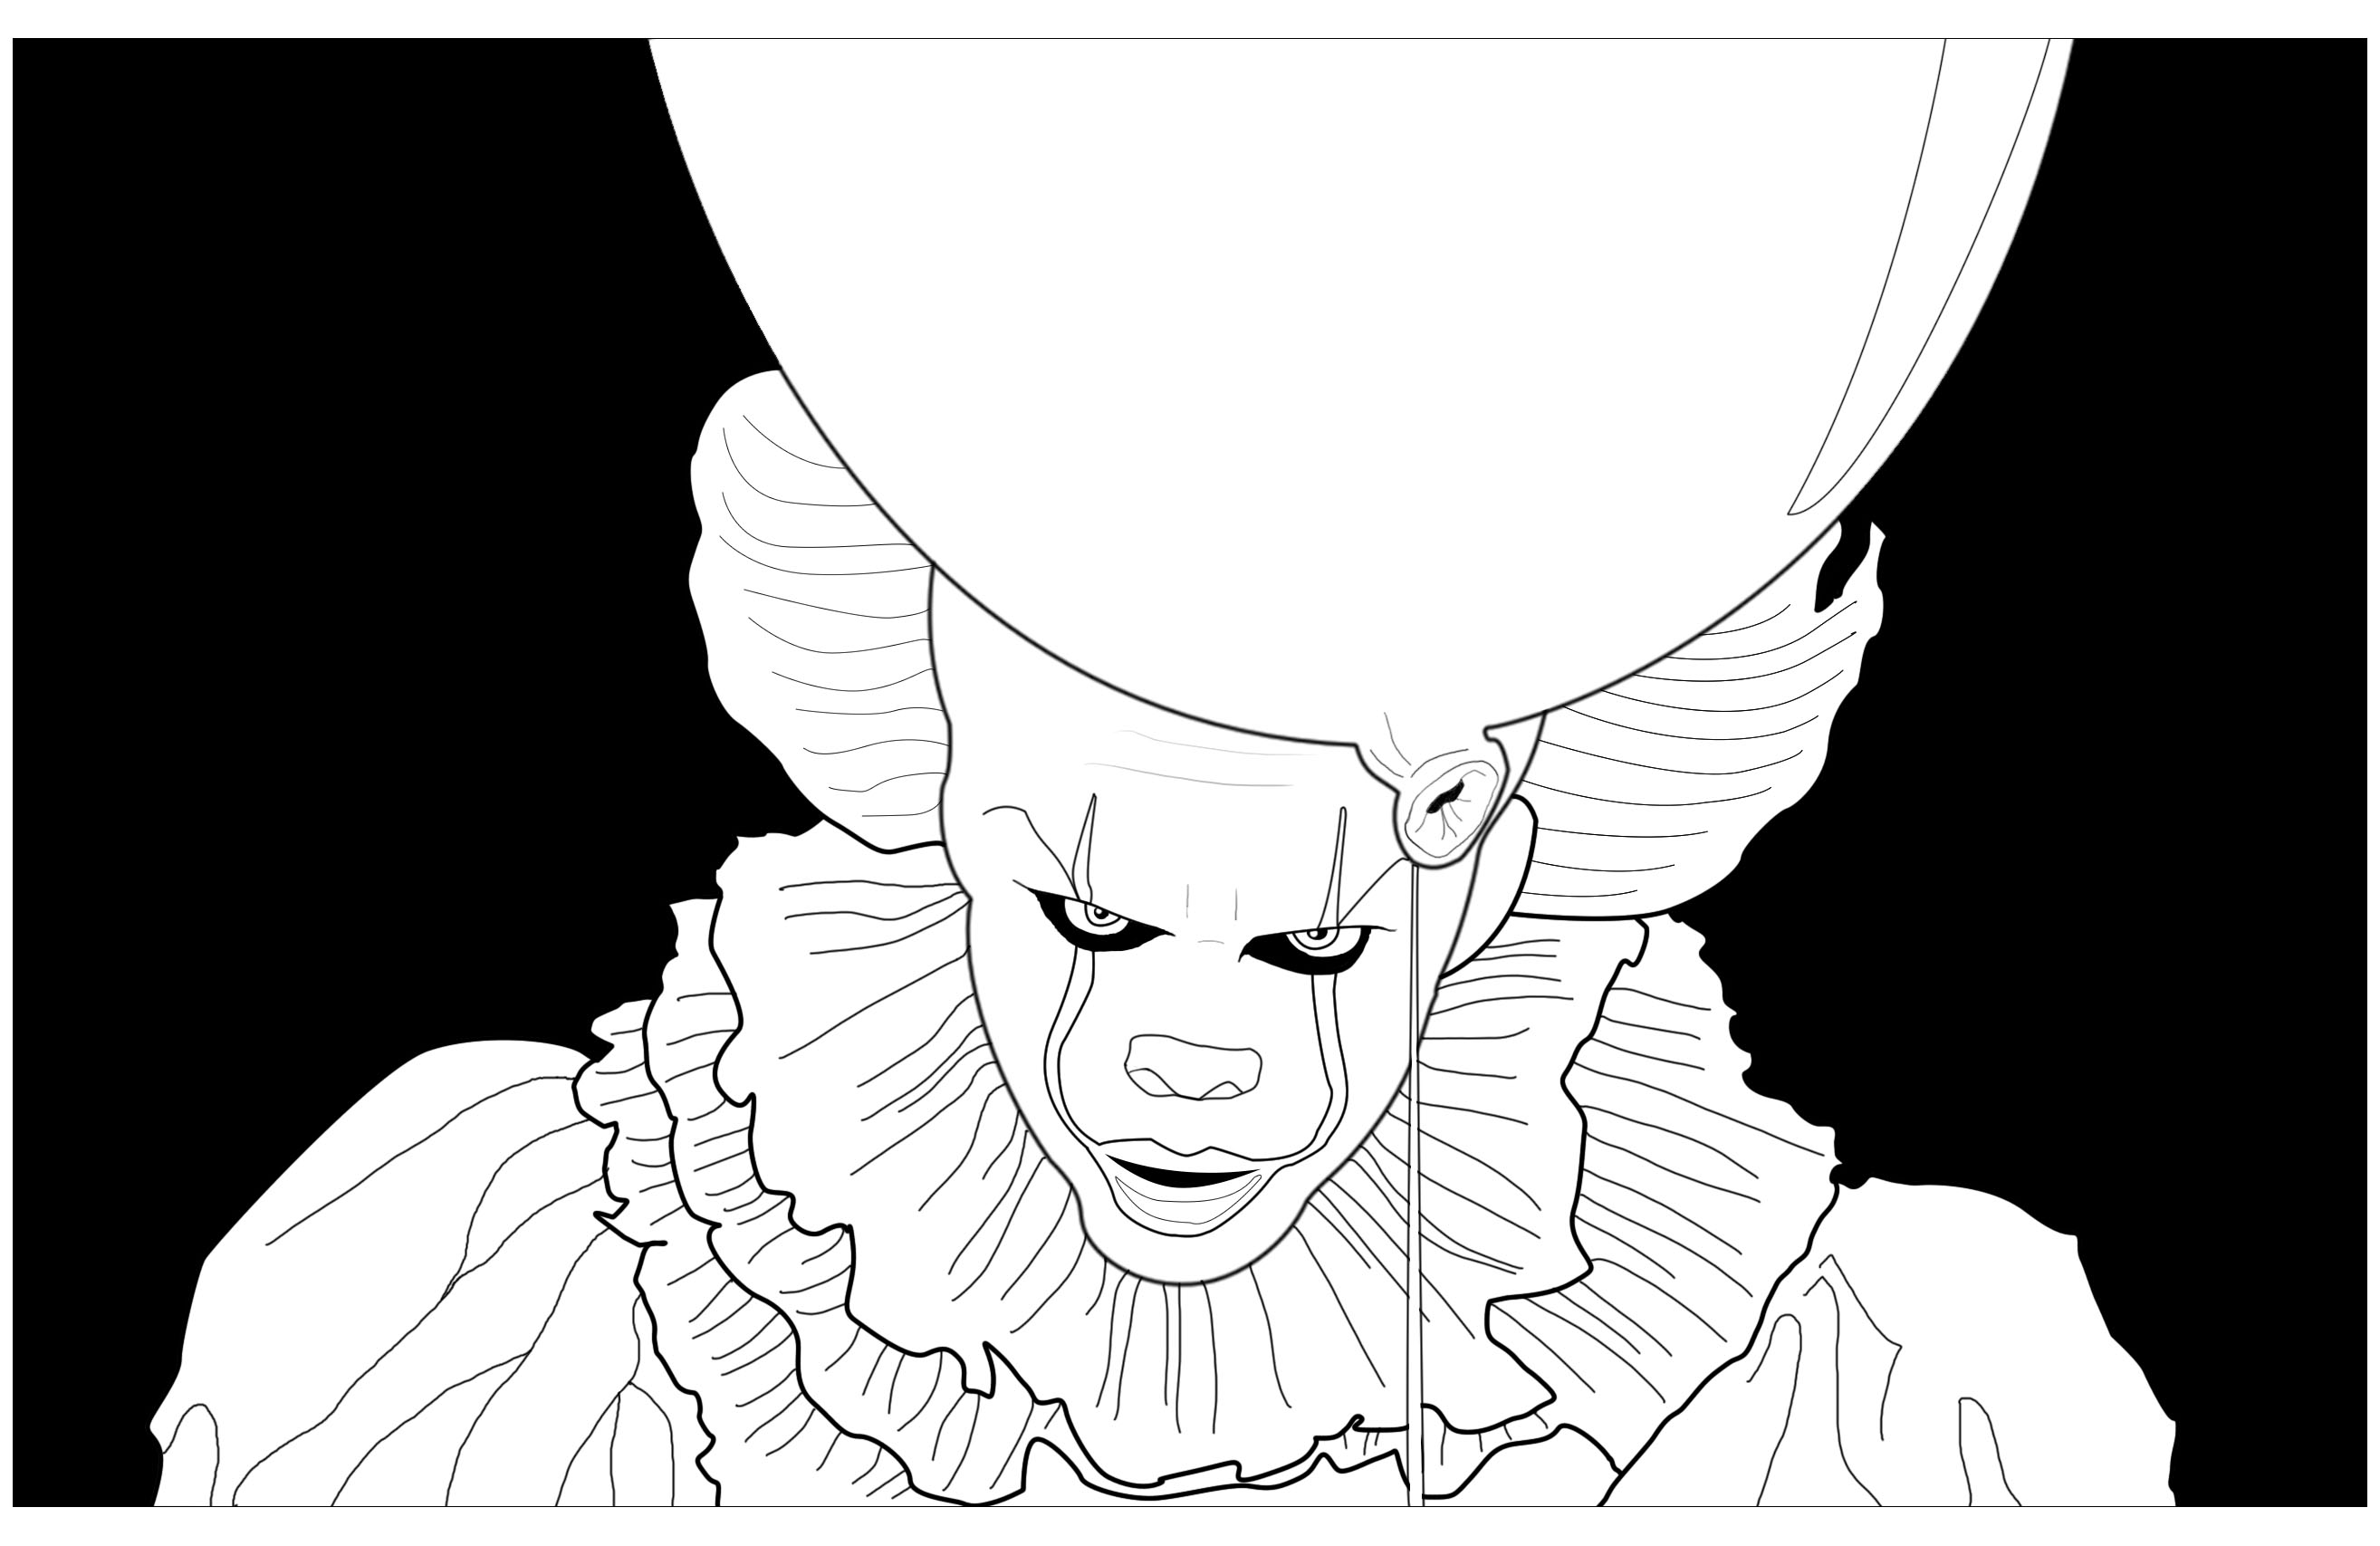 Ca Clown Pennywise Black Background Halloween Adult